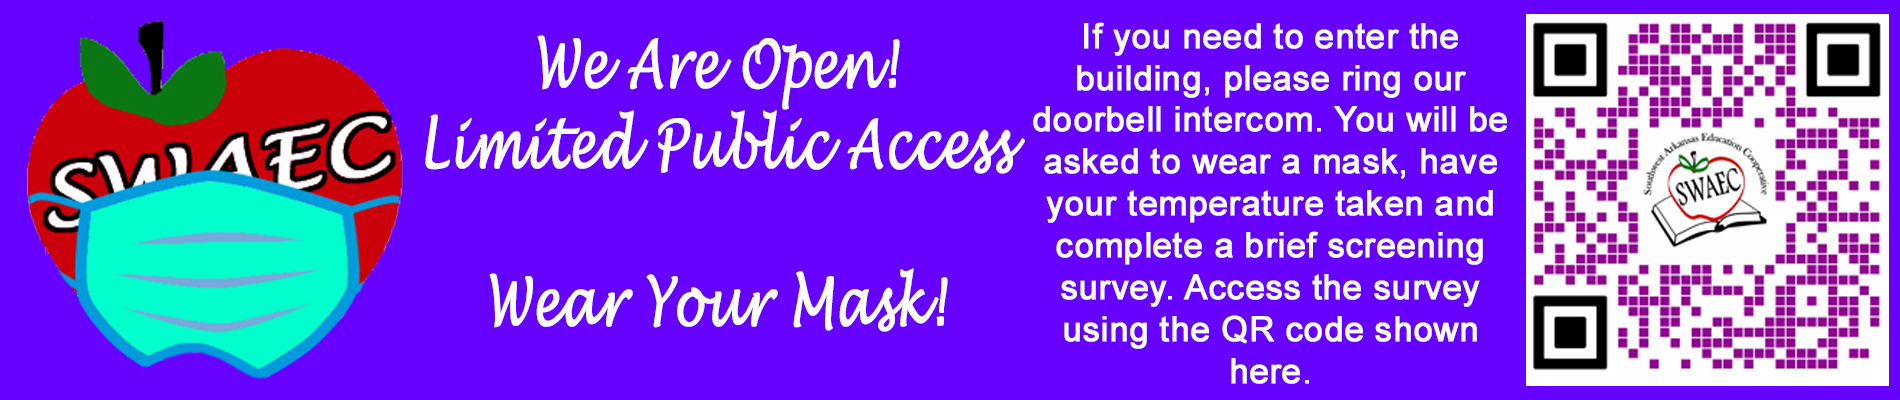 Please wear a mask at all times inside our building